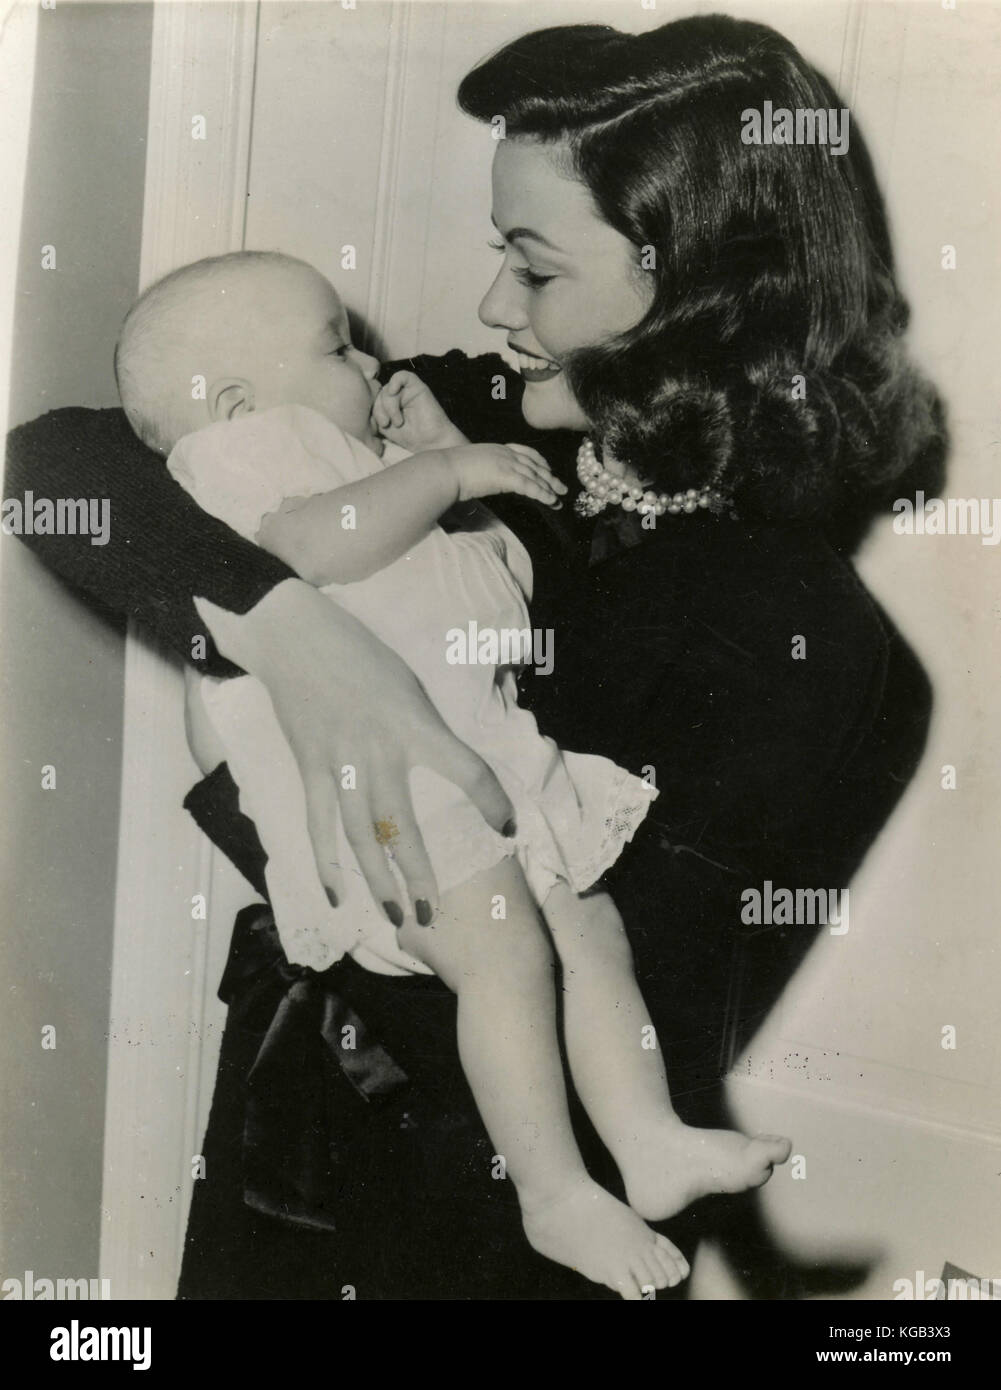 American actress Gene Tierney holding a baby - Stock Image